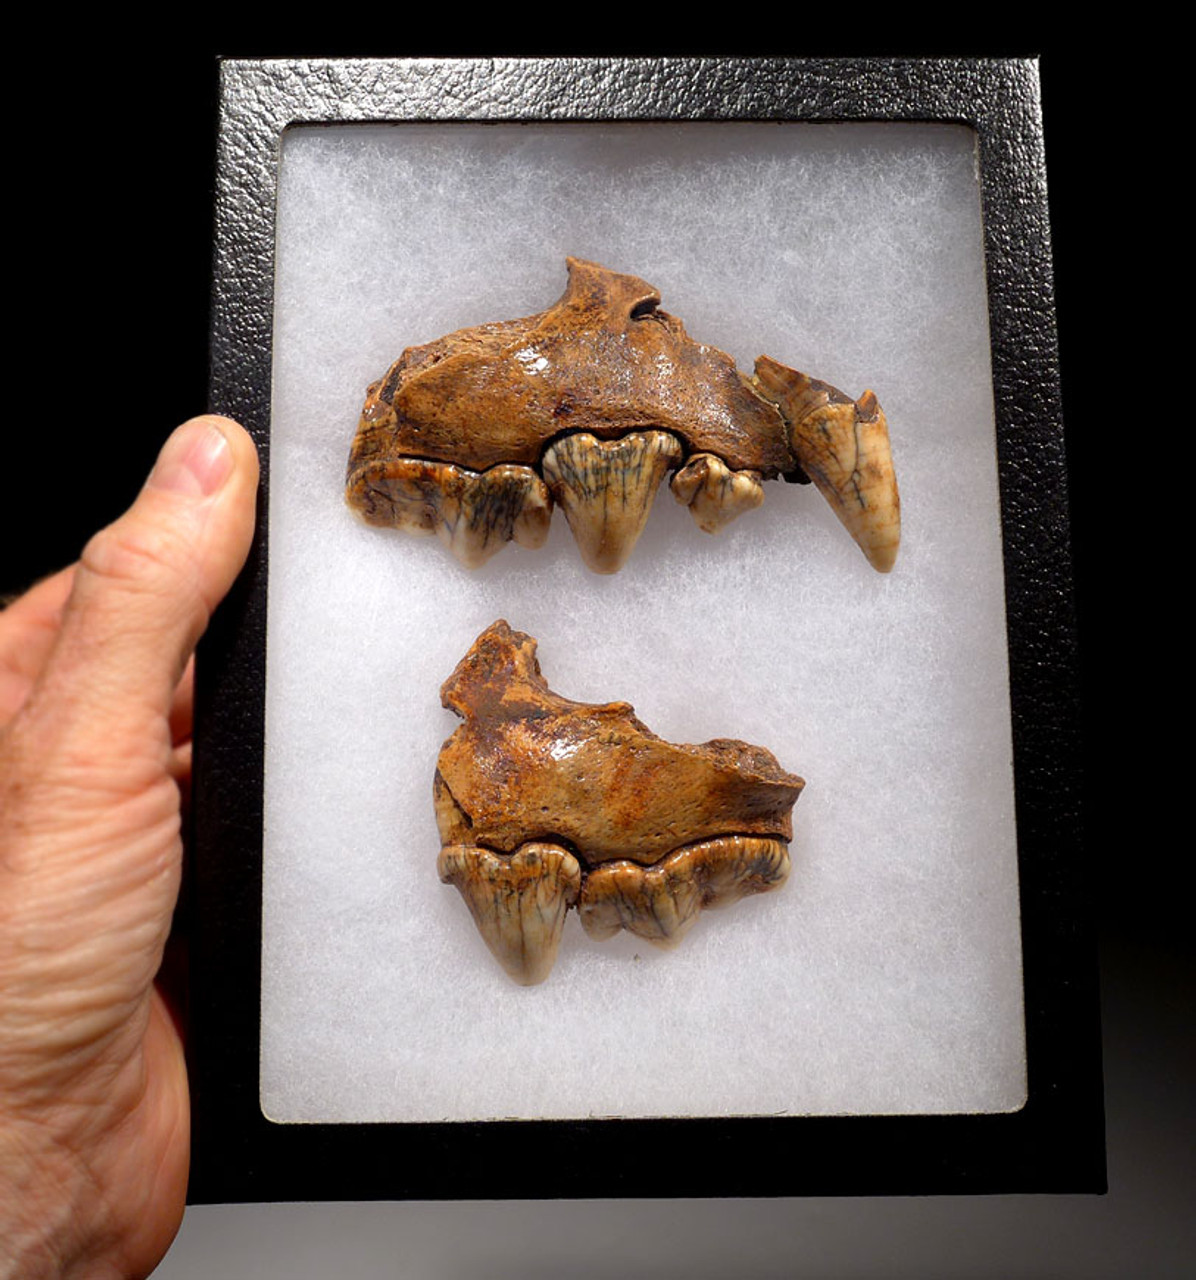 LMX174 - ULTRA RARE CROCUTA EUROPEAN CAVE HYENA  LEFT AND RIGHT FOSSIL MAXILLA JAWS WITH THE FINEST PRESERVATION